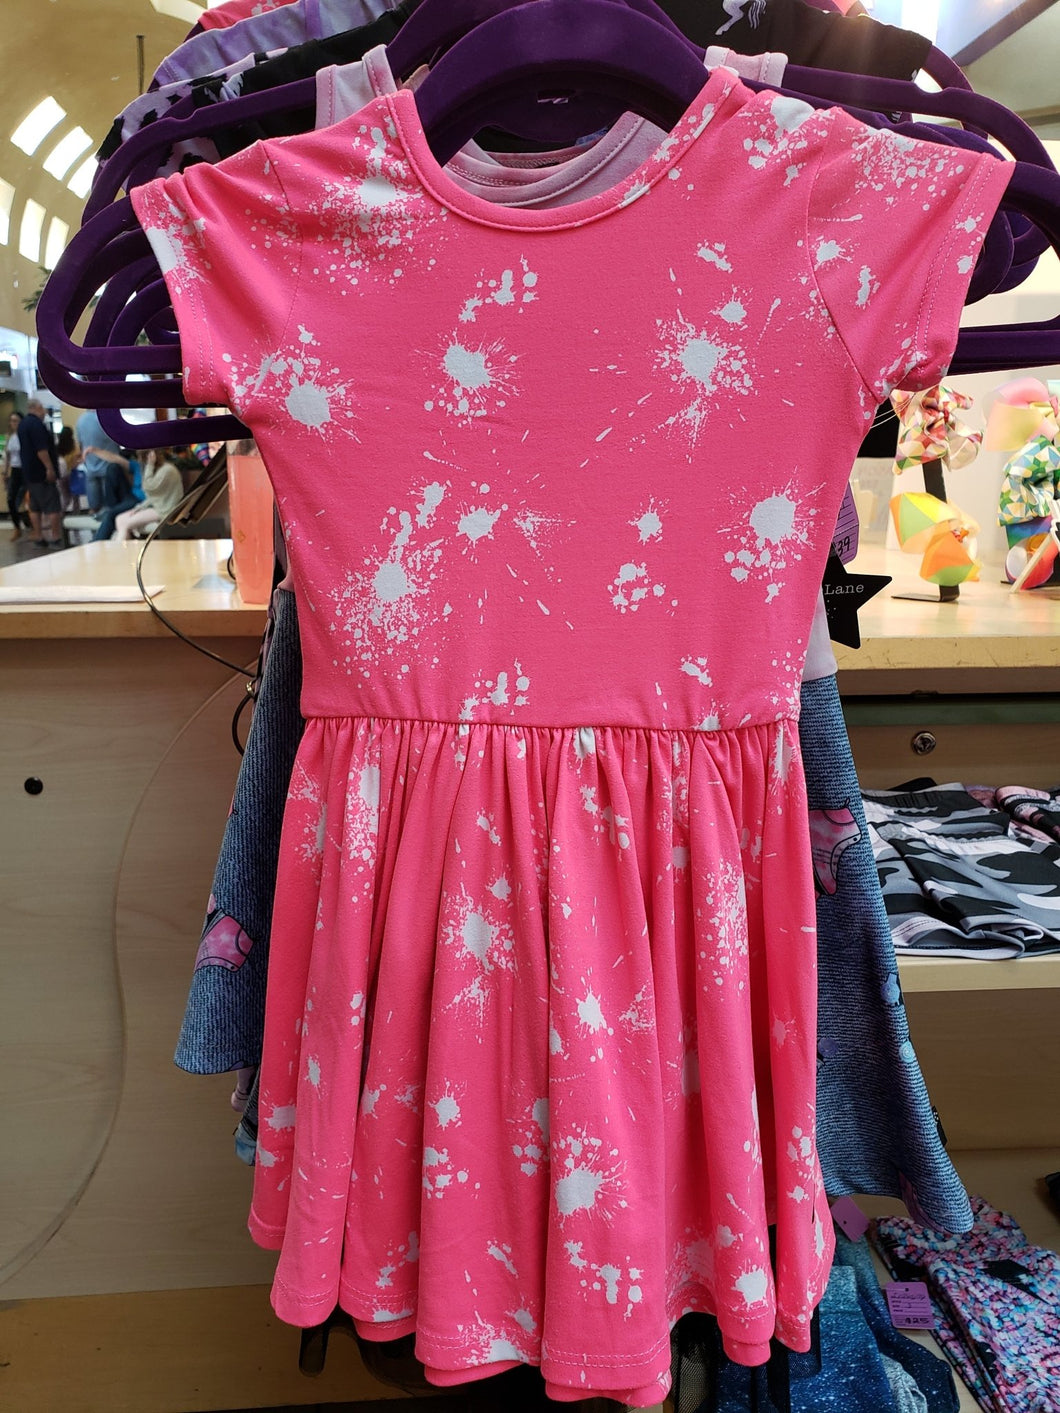 Neon Pink Splatter Dress - LilChic BabyBug Boutique